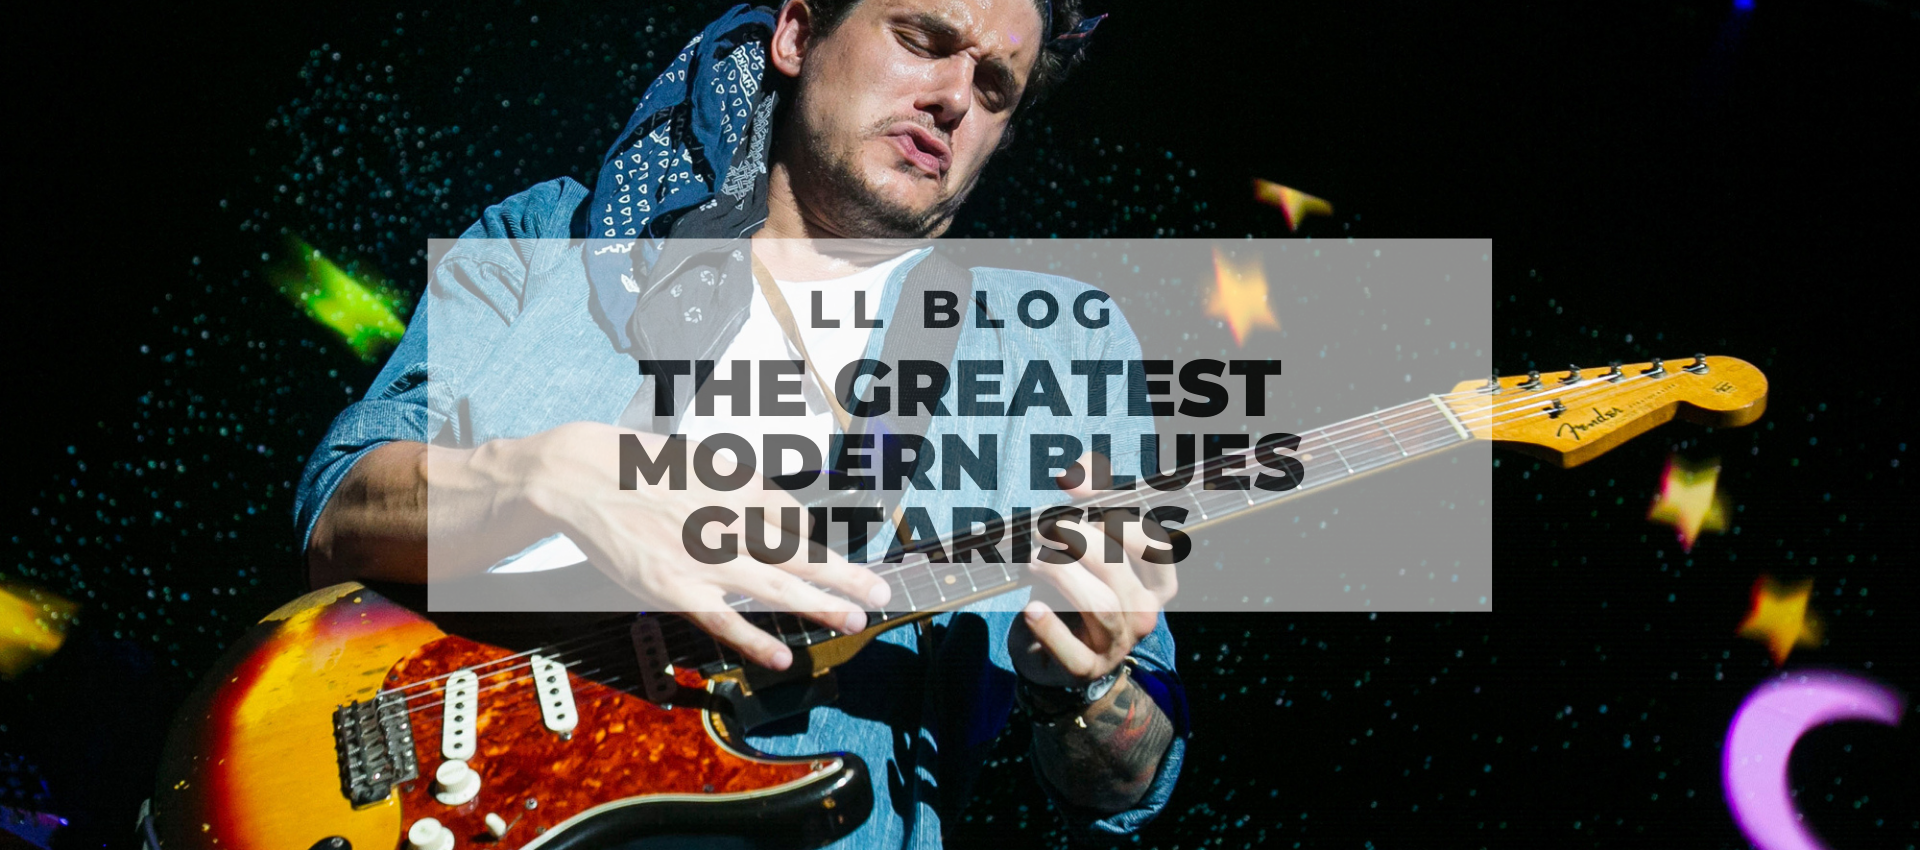 GUITAR MAINTENANCE 4 SIMPLE WAYS TO KEEP YOUR GUITAR PLAYING FIT 27